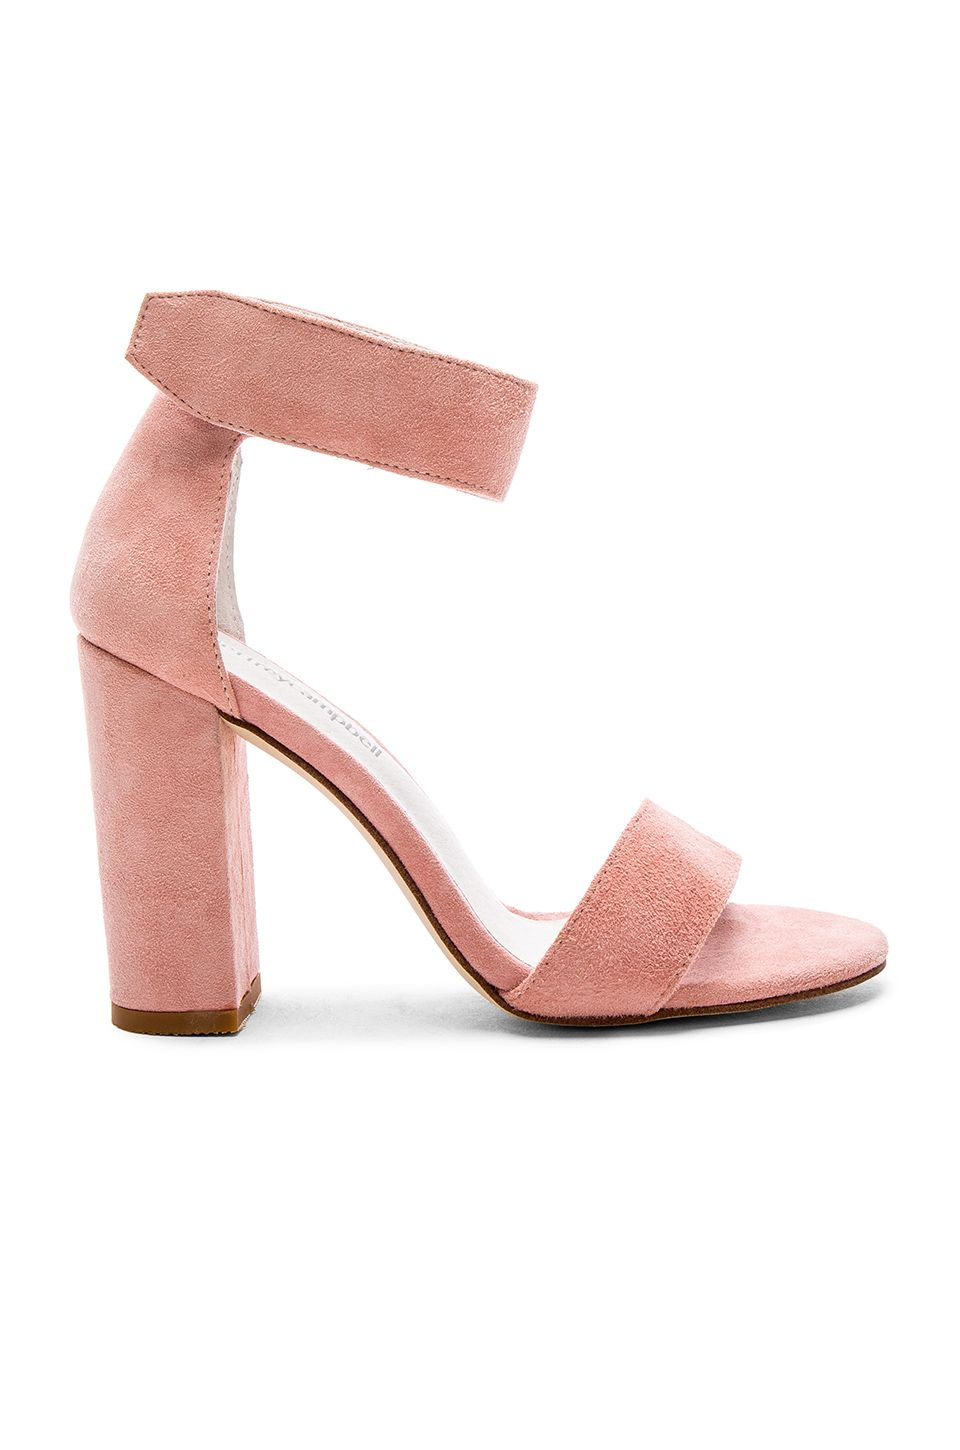 1de7bb7aa0de Jeffrey Campbell Lindsay Heels in Light Pink Suede